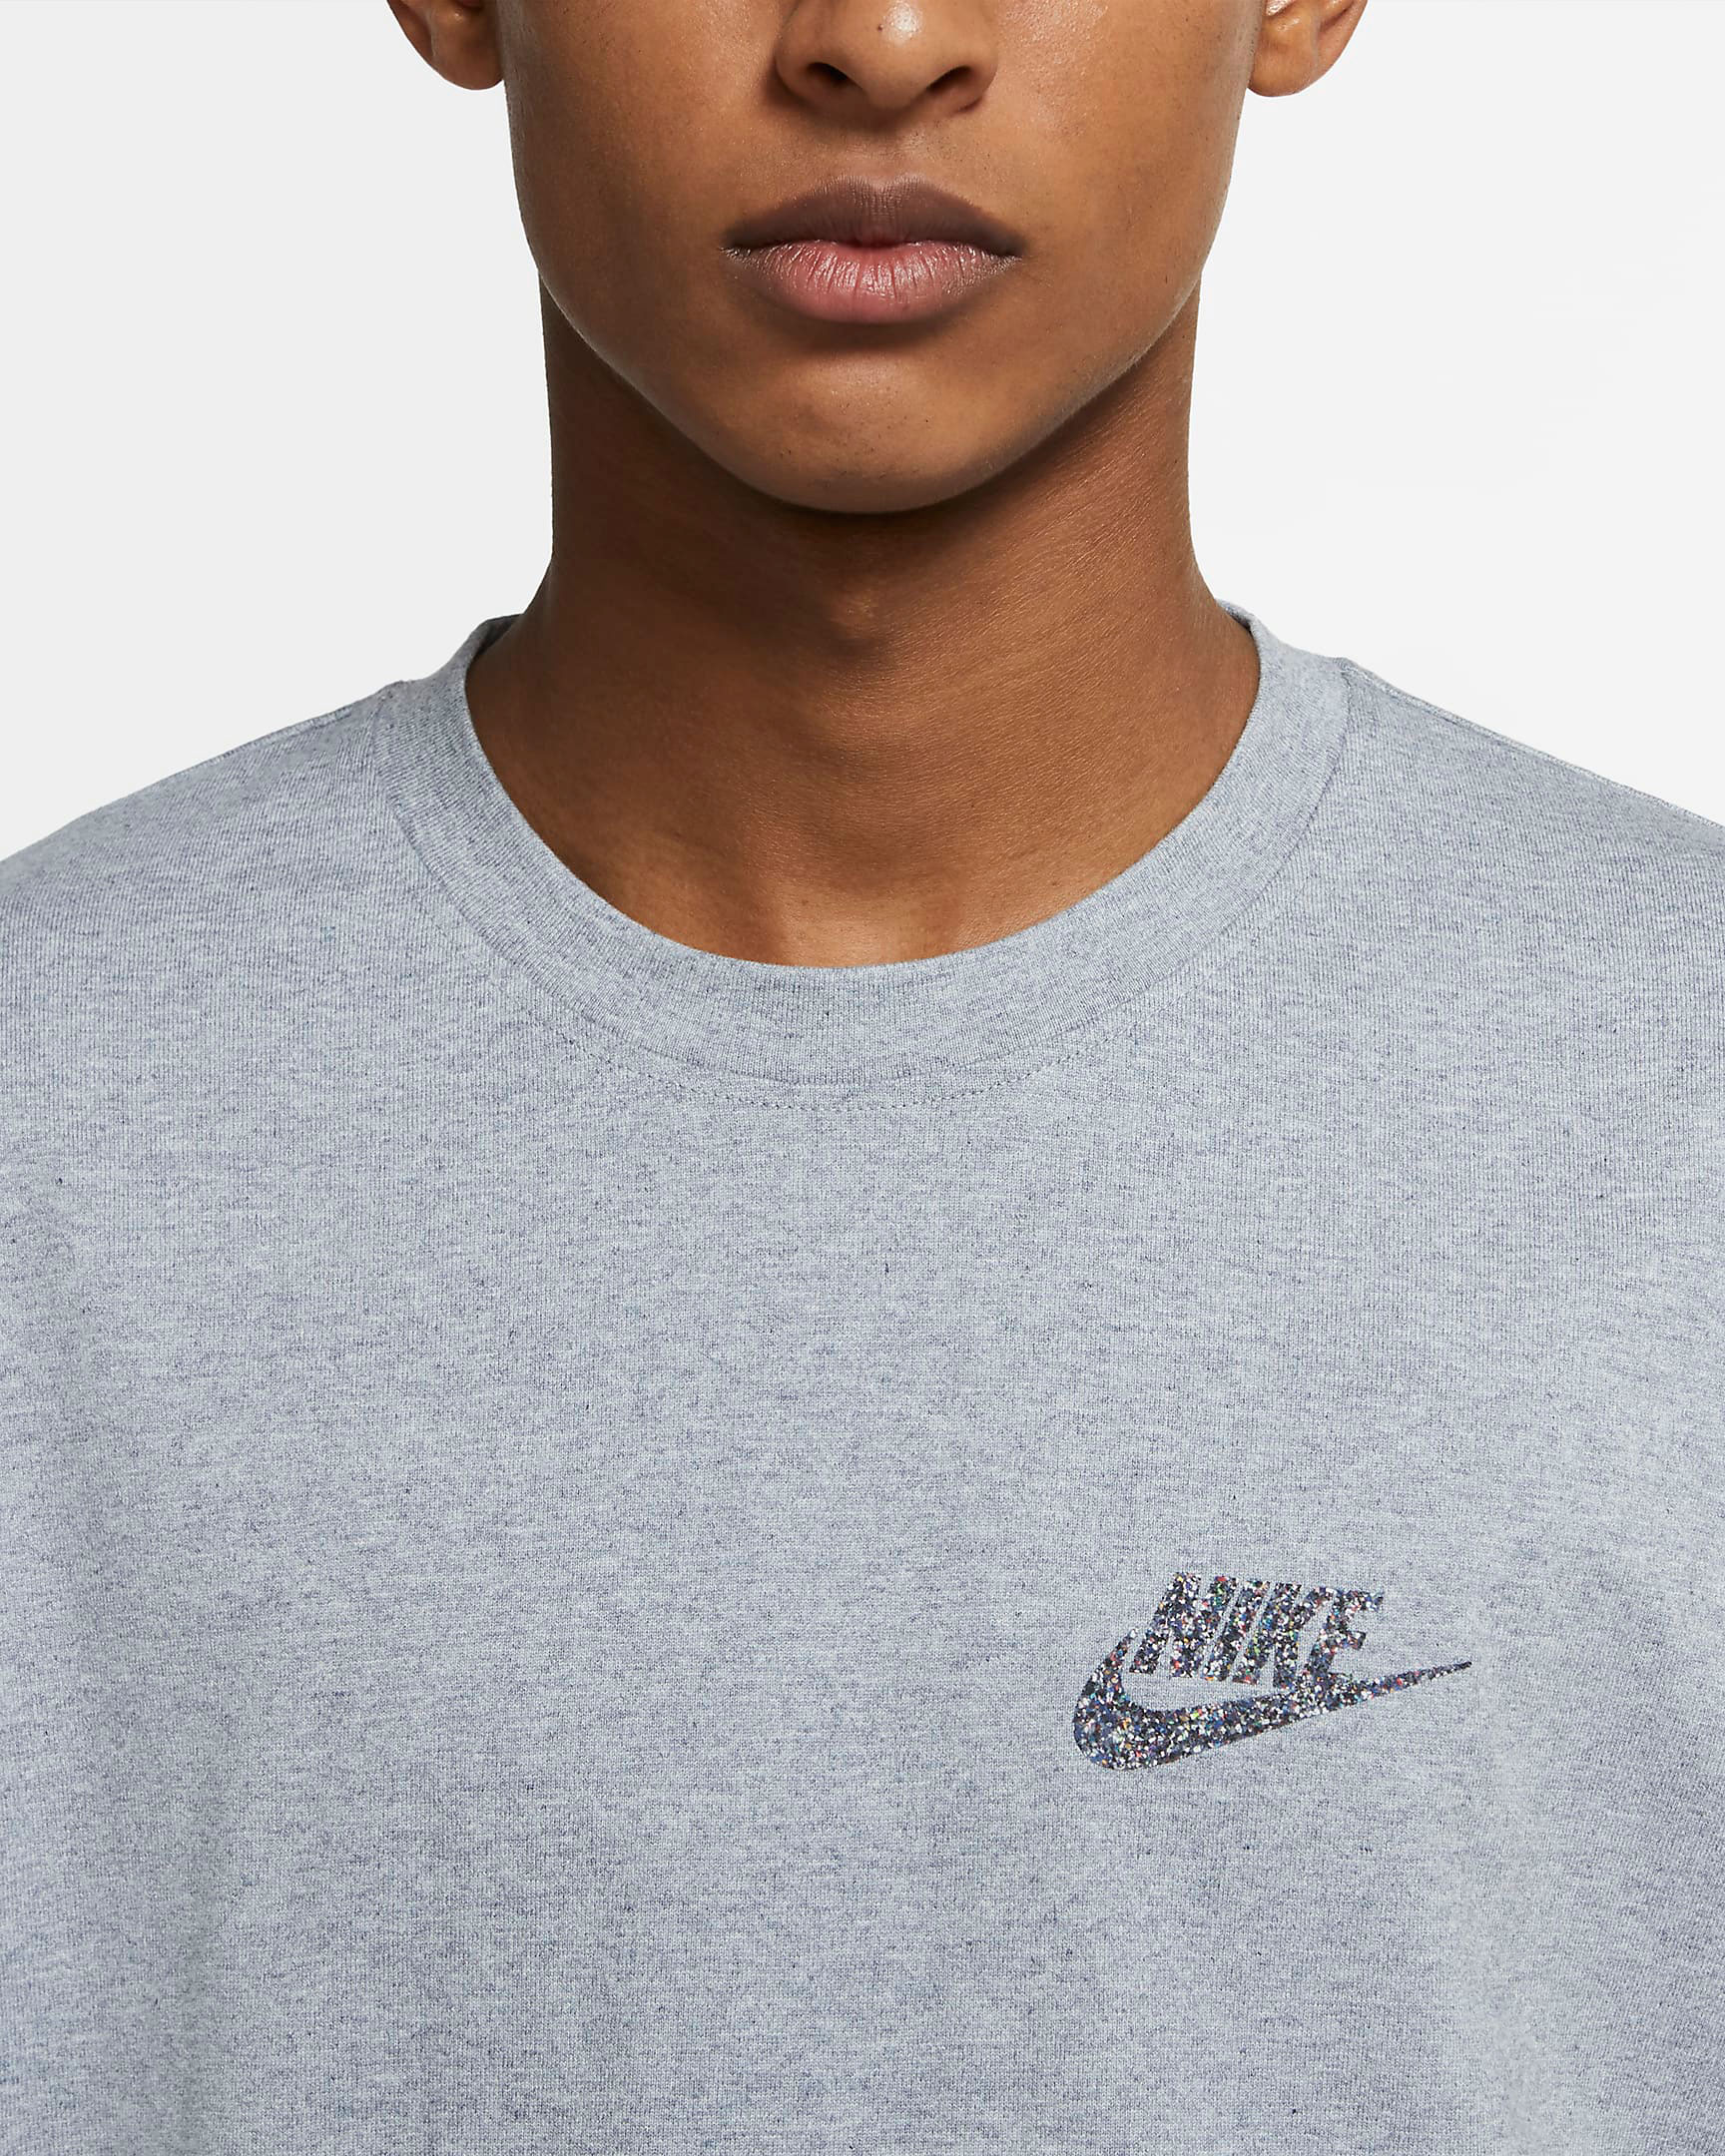 nike-space-hippie-black-shirt